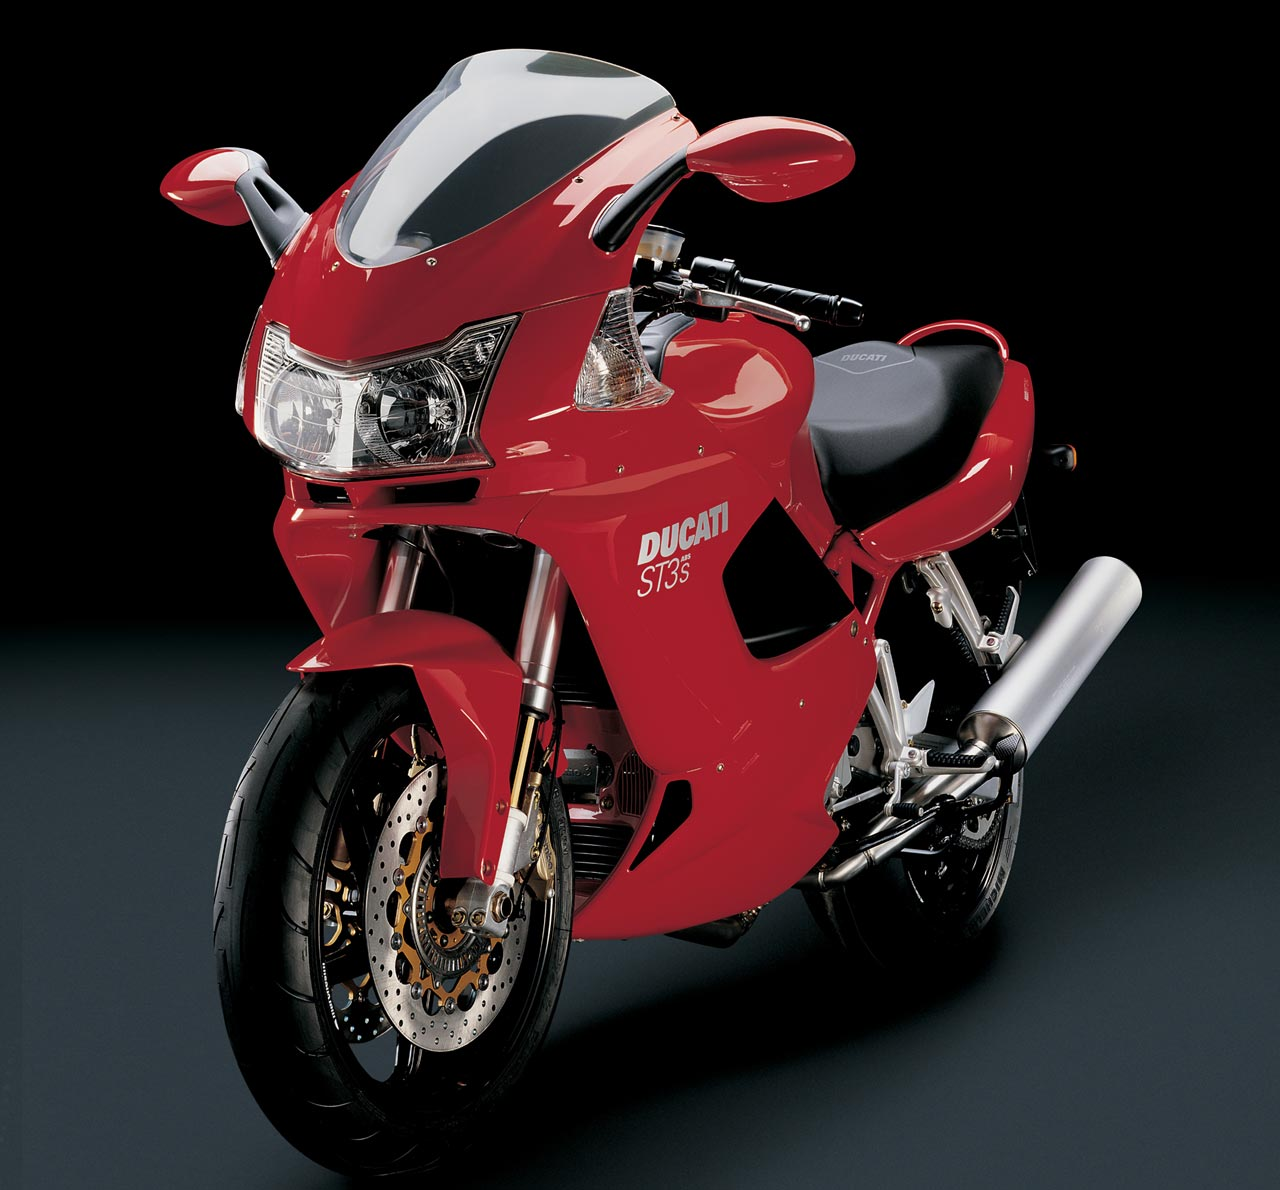 Ducati ST3 S ABS 2006 images #79251